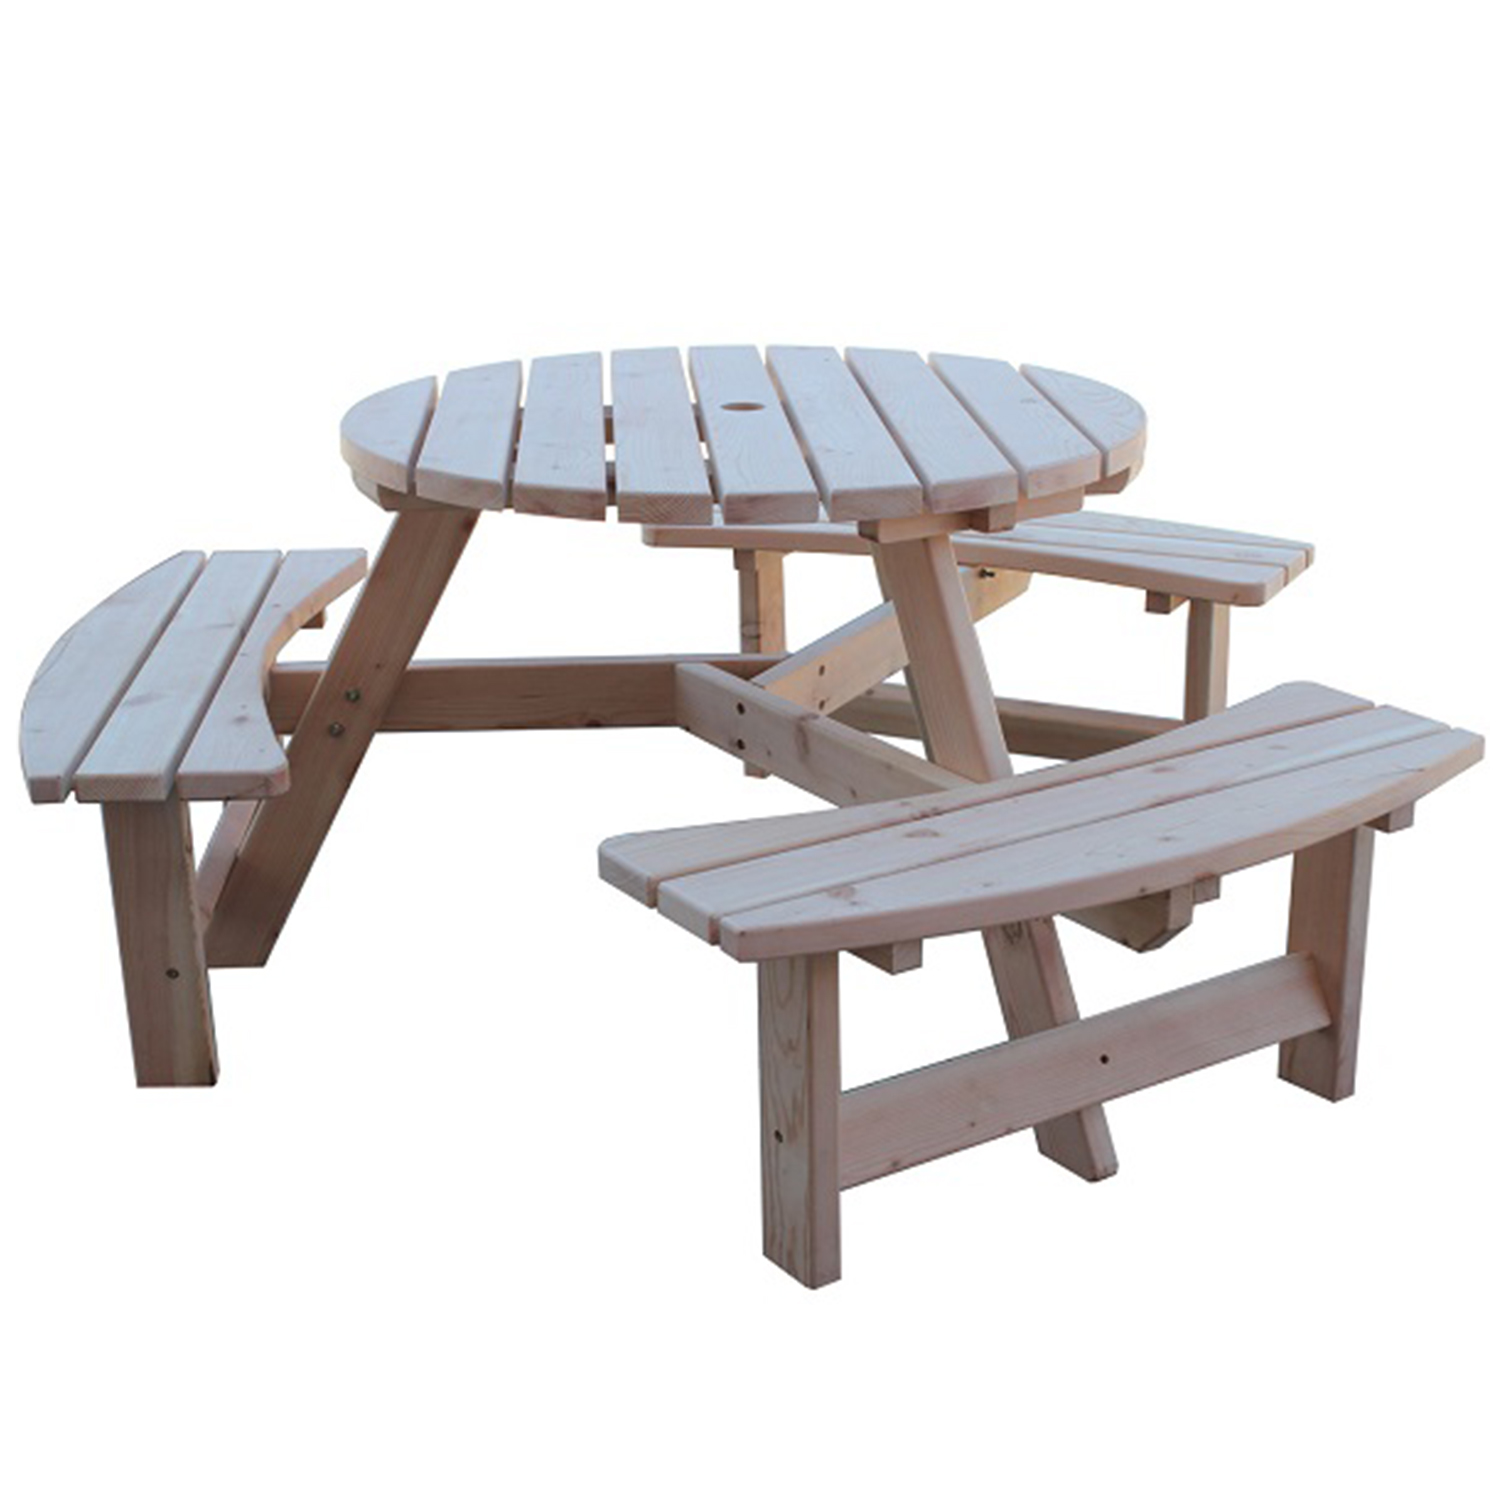 Circular wooden benches 28 images 100 curved benches for Beautiful wooden benches